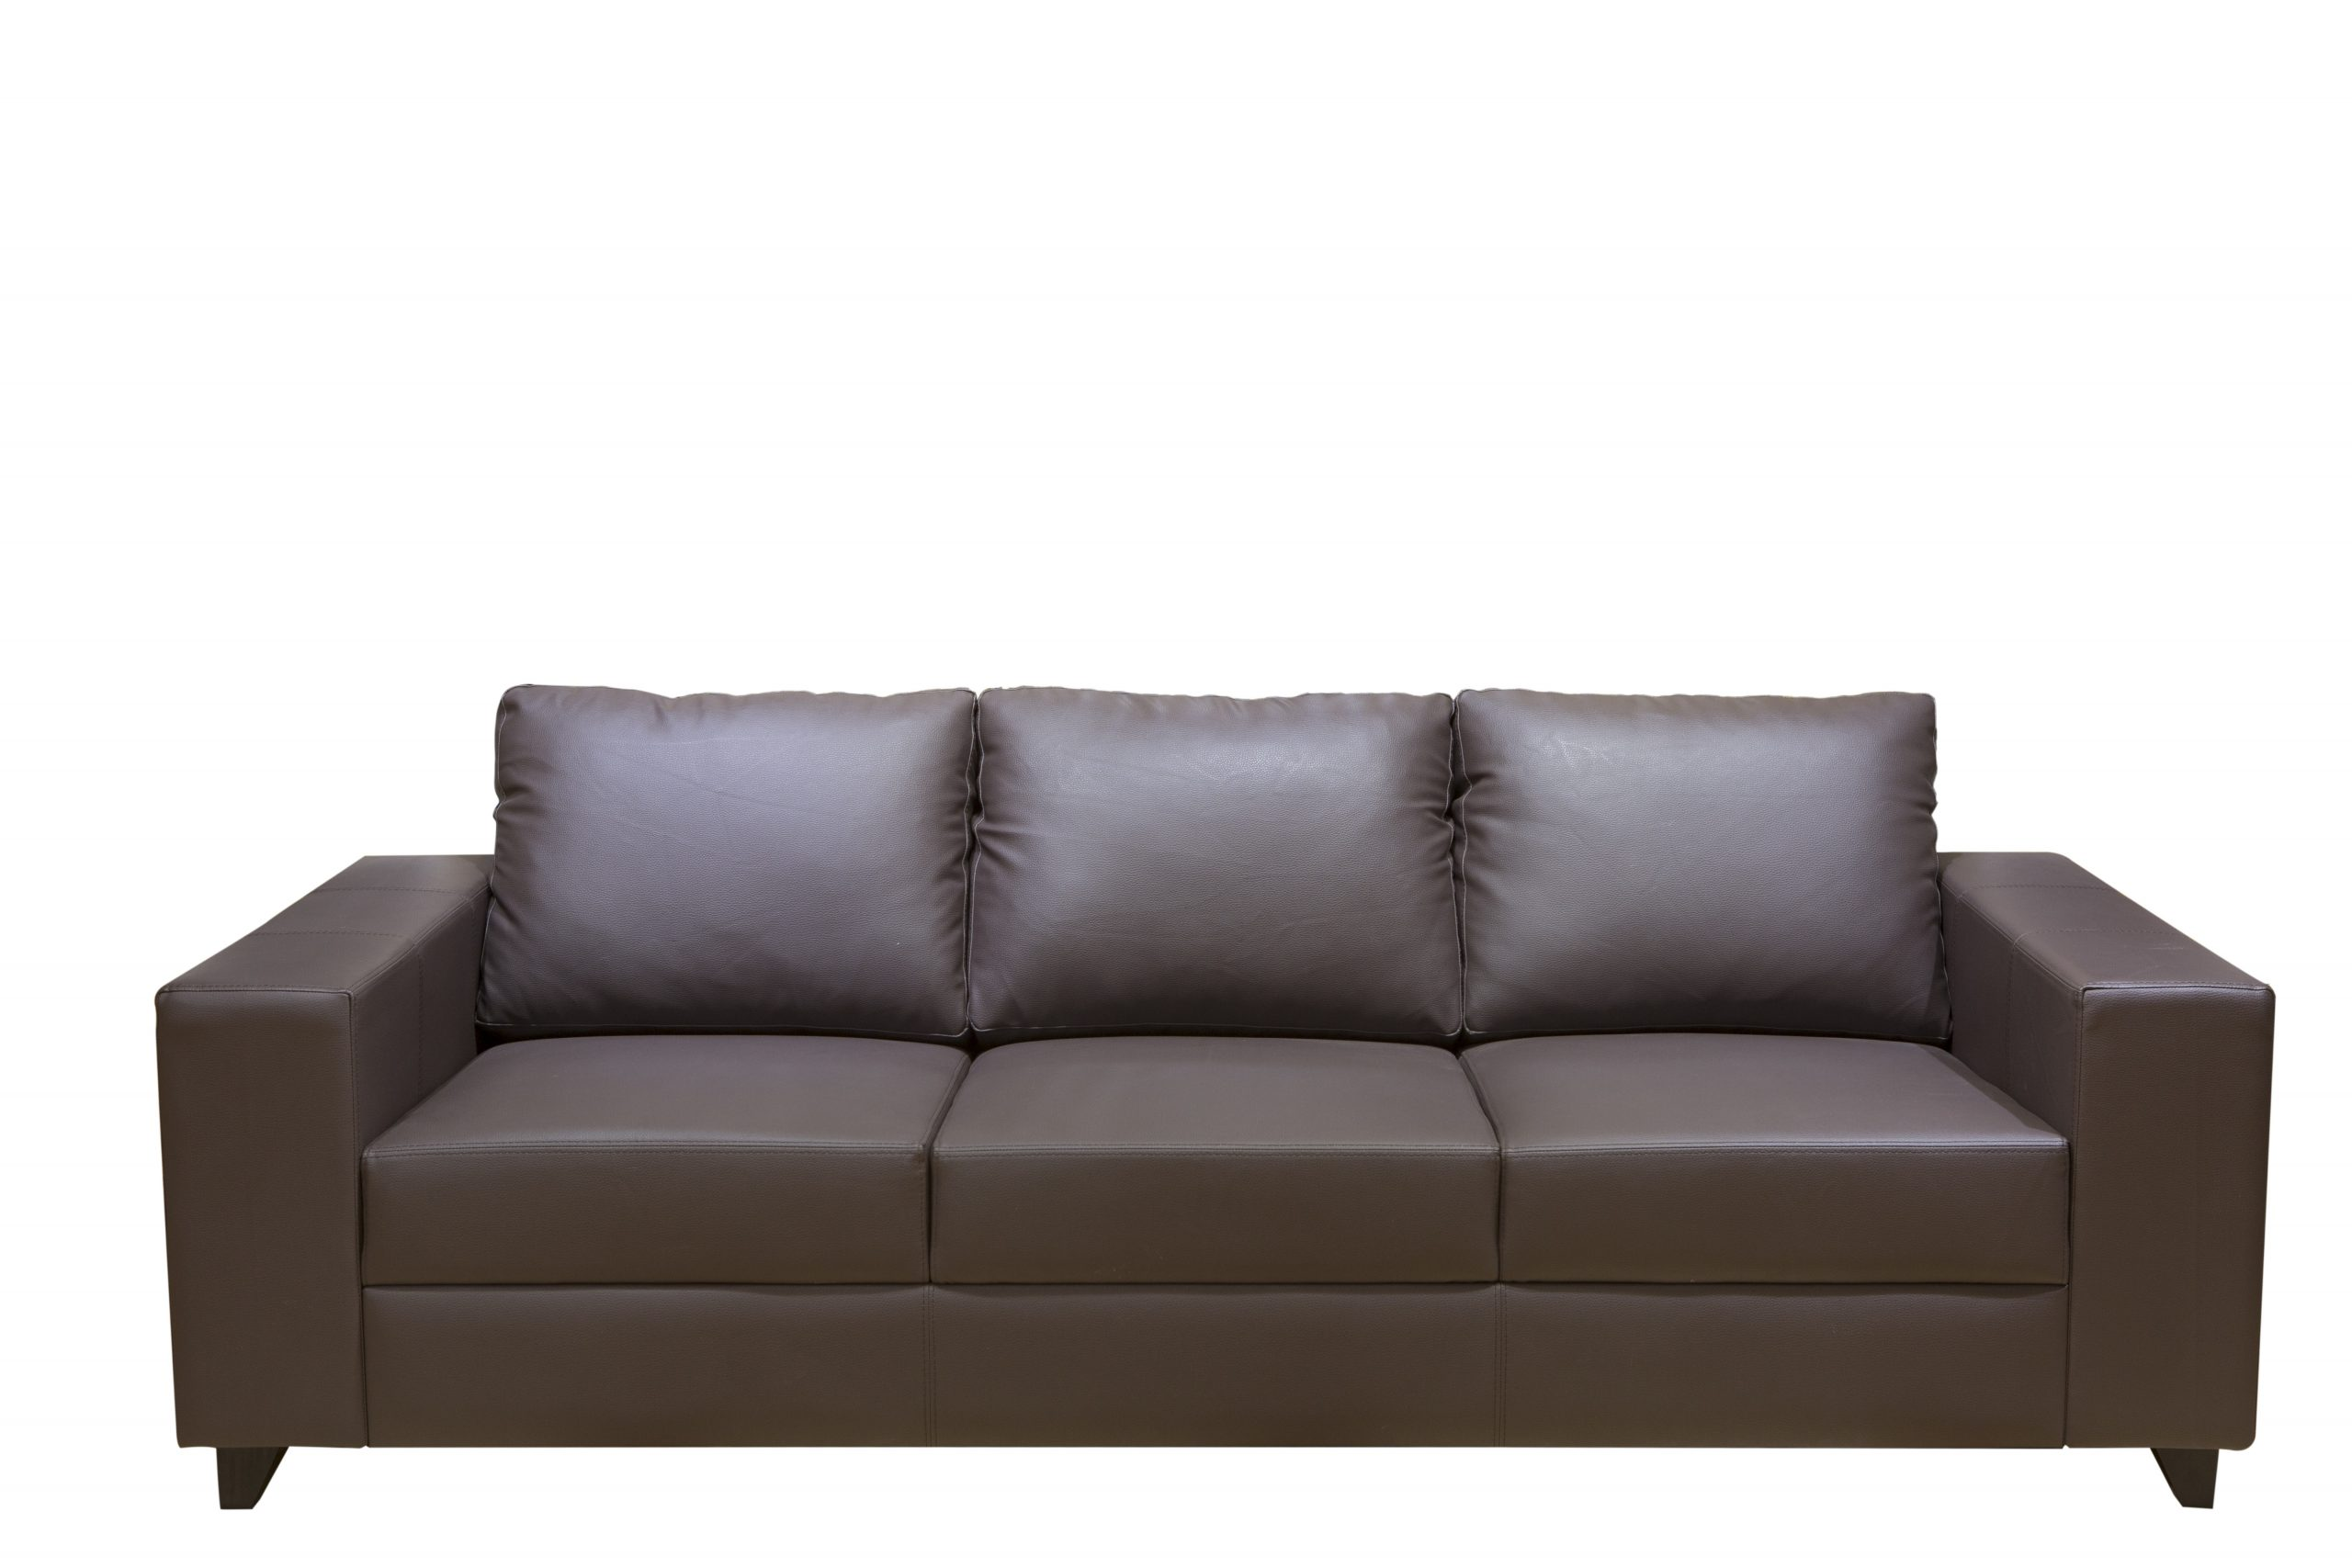 Sofa bộ Califonia